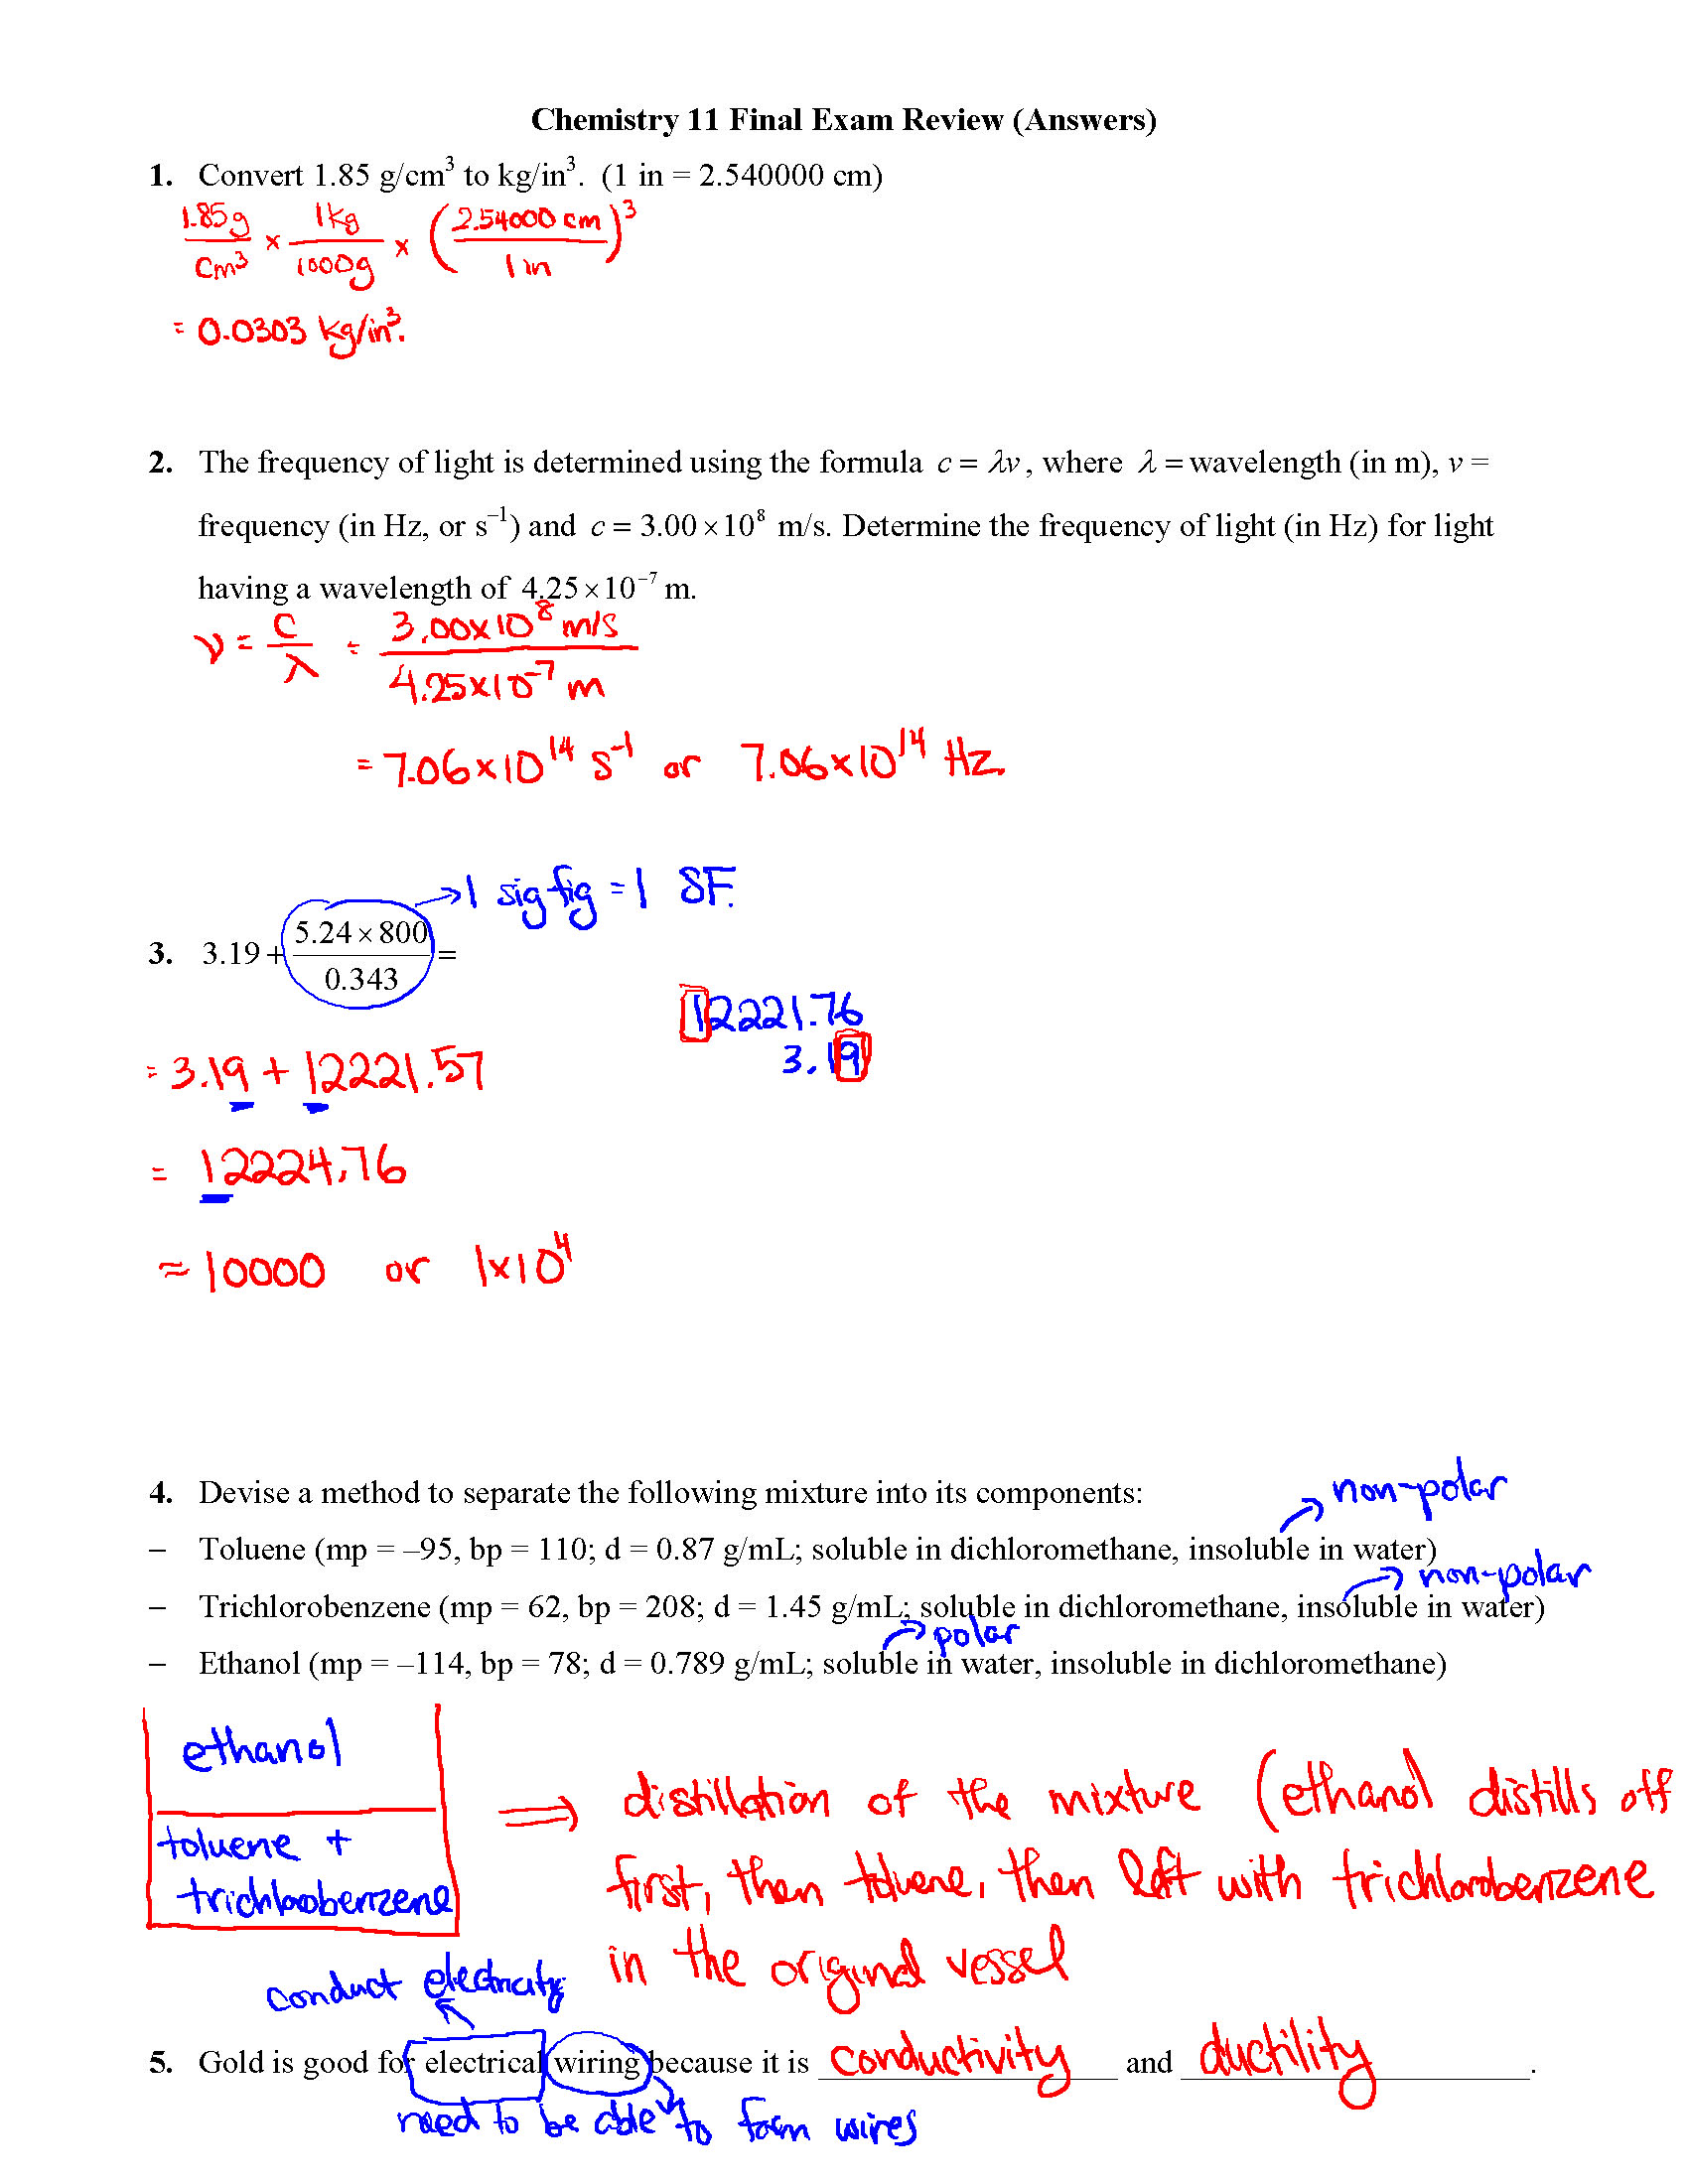 Chem 11 Final Exam Review Answers